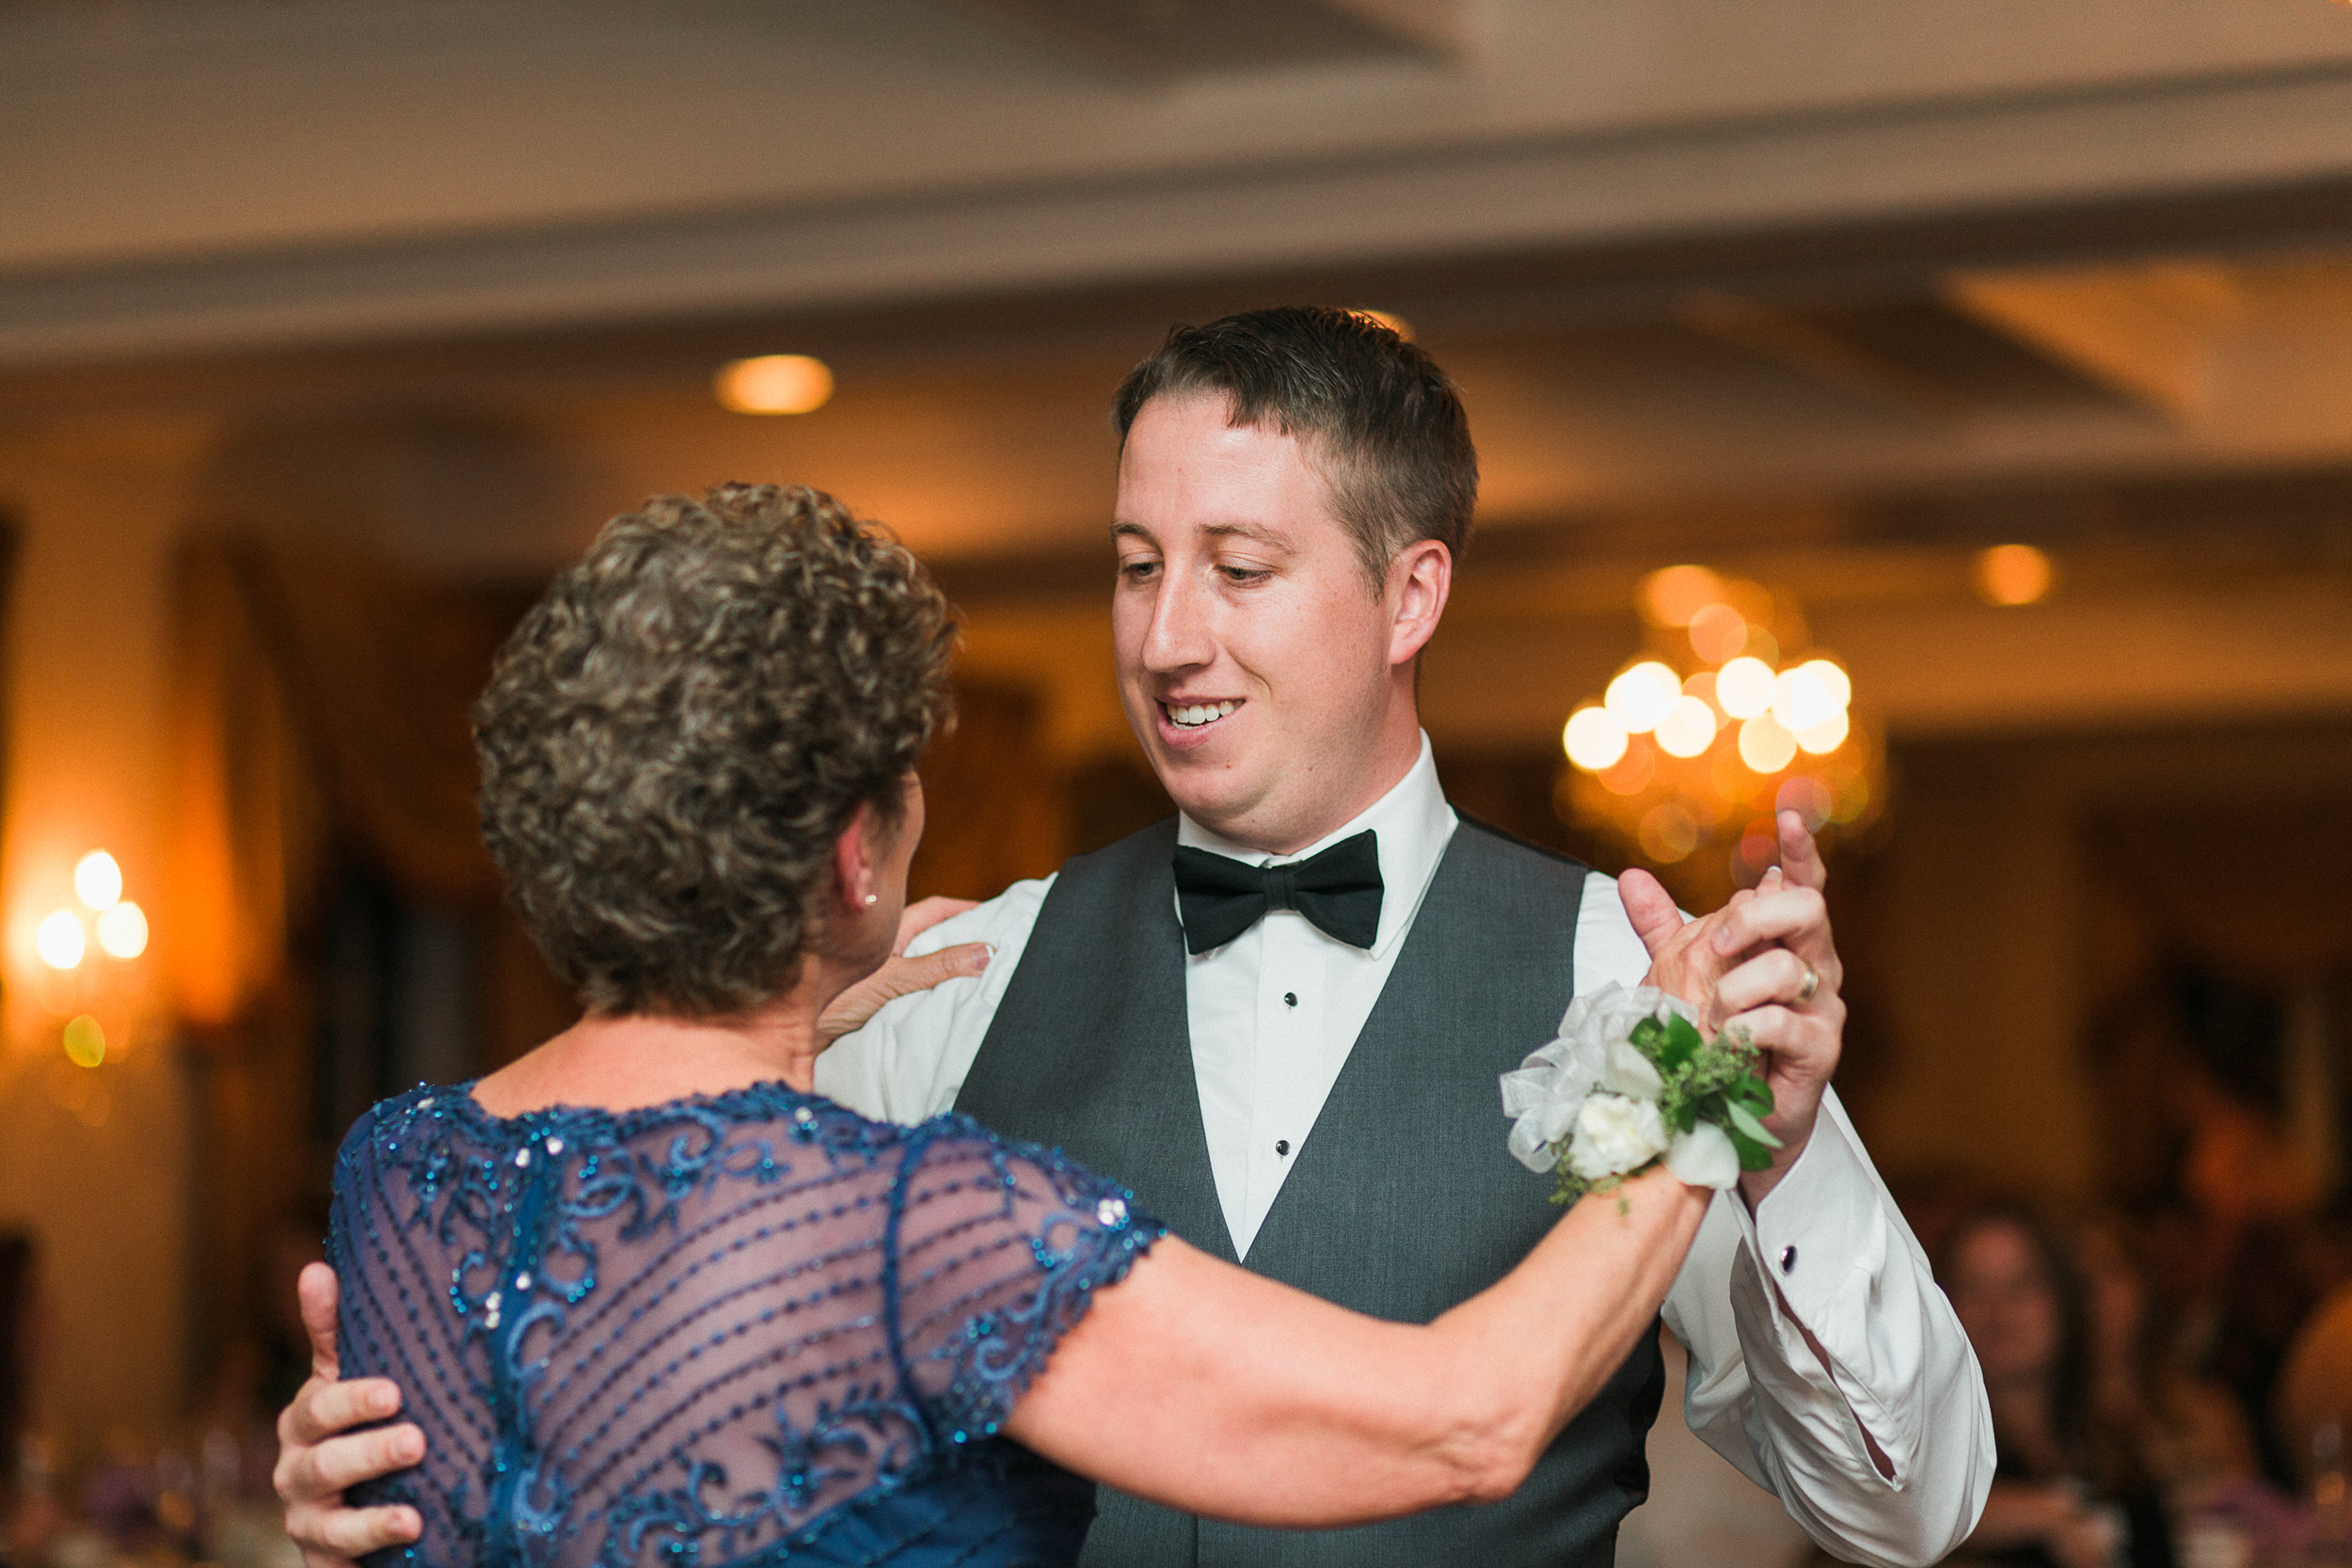 Washington Crossing PA Wedding WRHPhotography-48.jpg